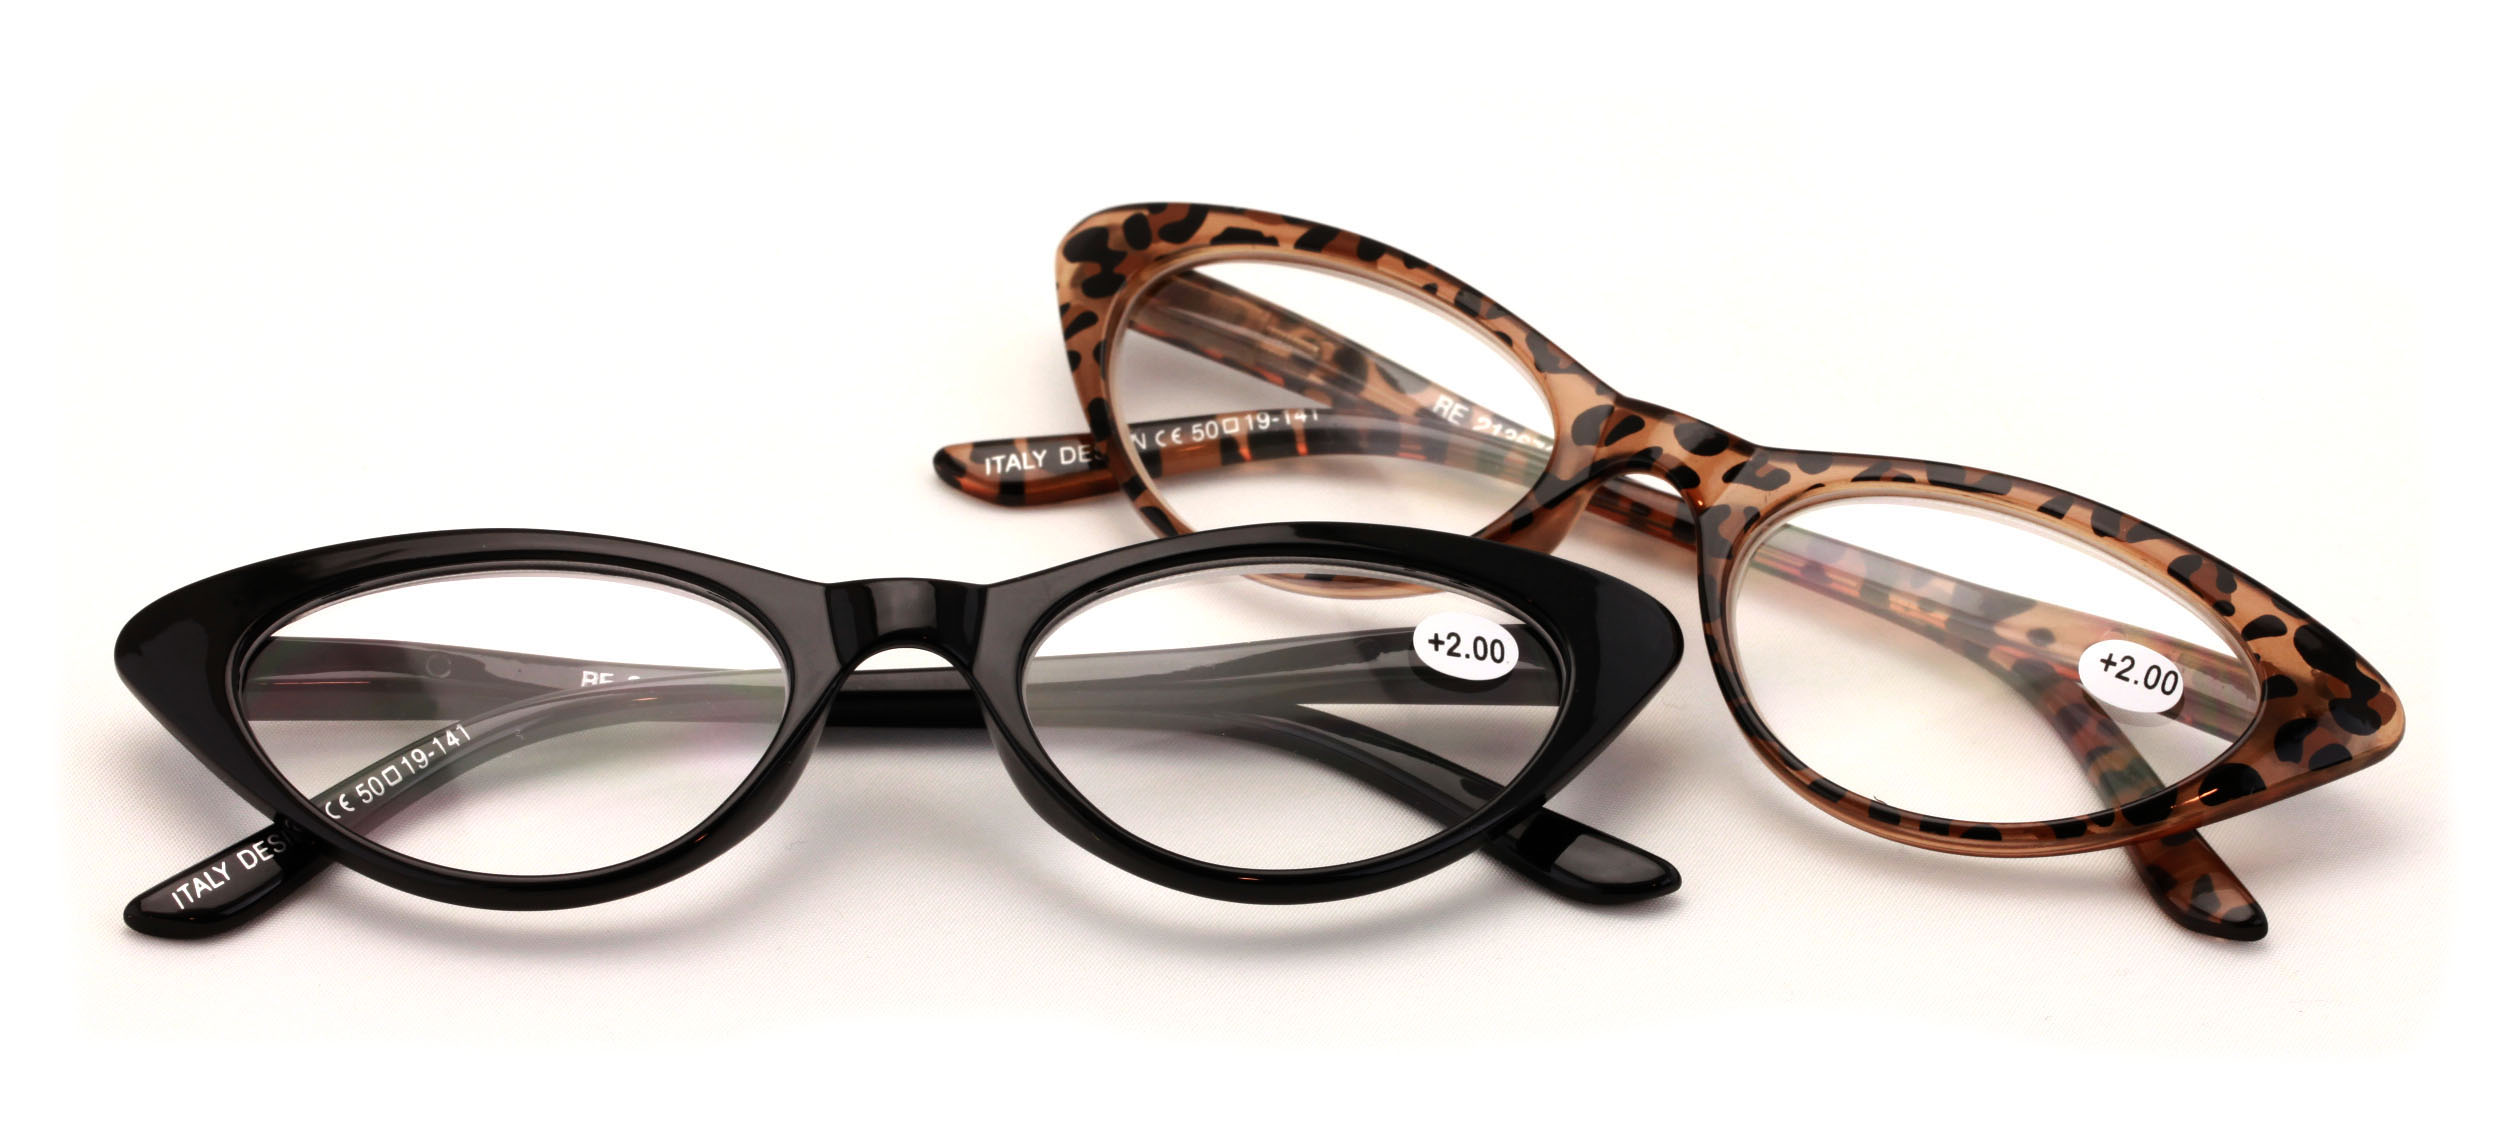 6455ca6f52 V.W.E. 2 Pairs Deluxe Female Cateye Vintage Reading Glasses Women Readers -  Walmart.com